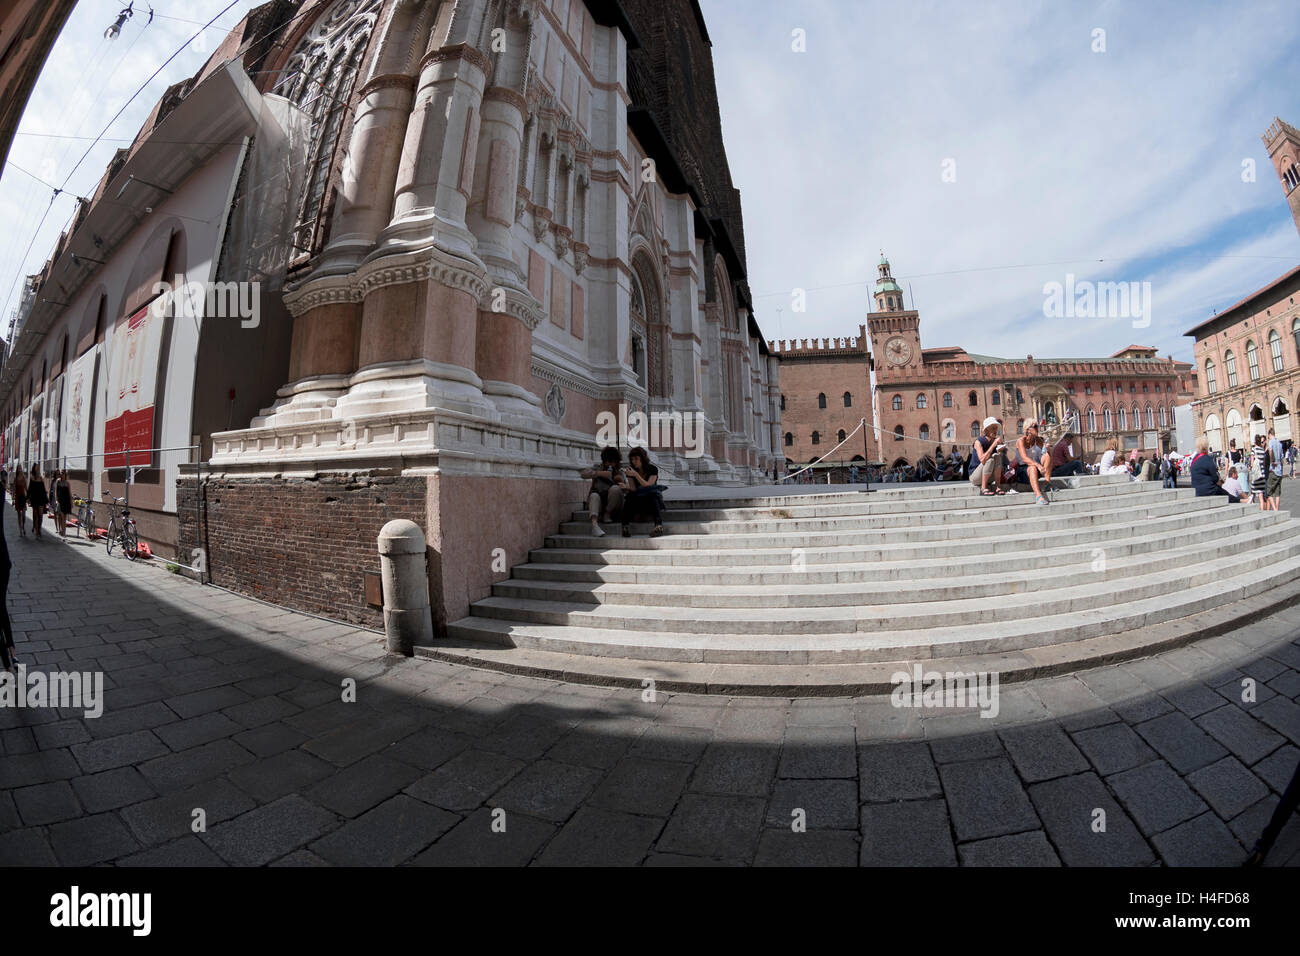 Unusual angle  view on City Hall, Piazza Maggiore from steps, Bologna, Italy, Europe - Stock Image